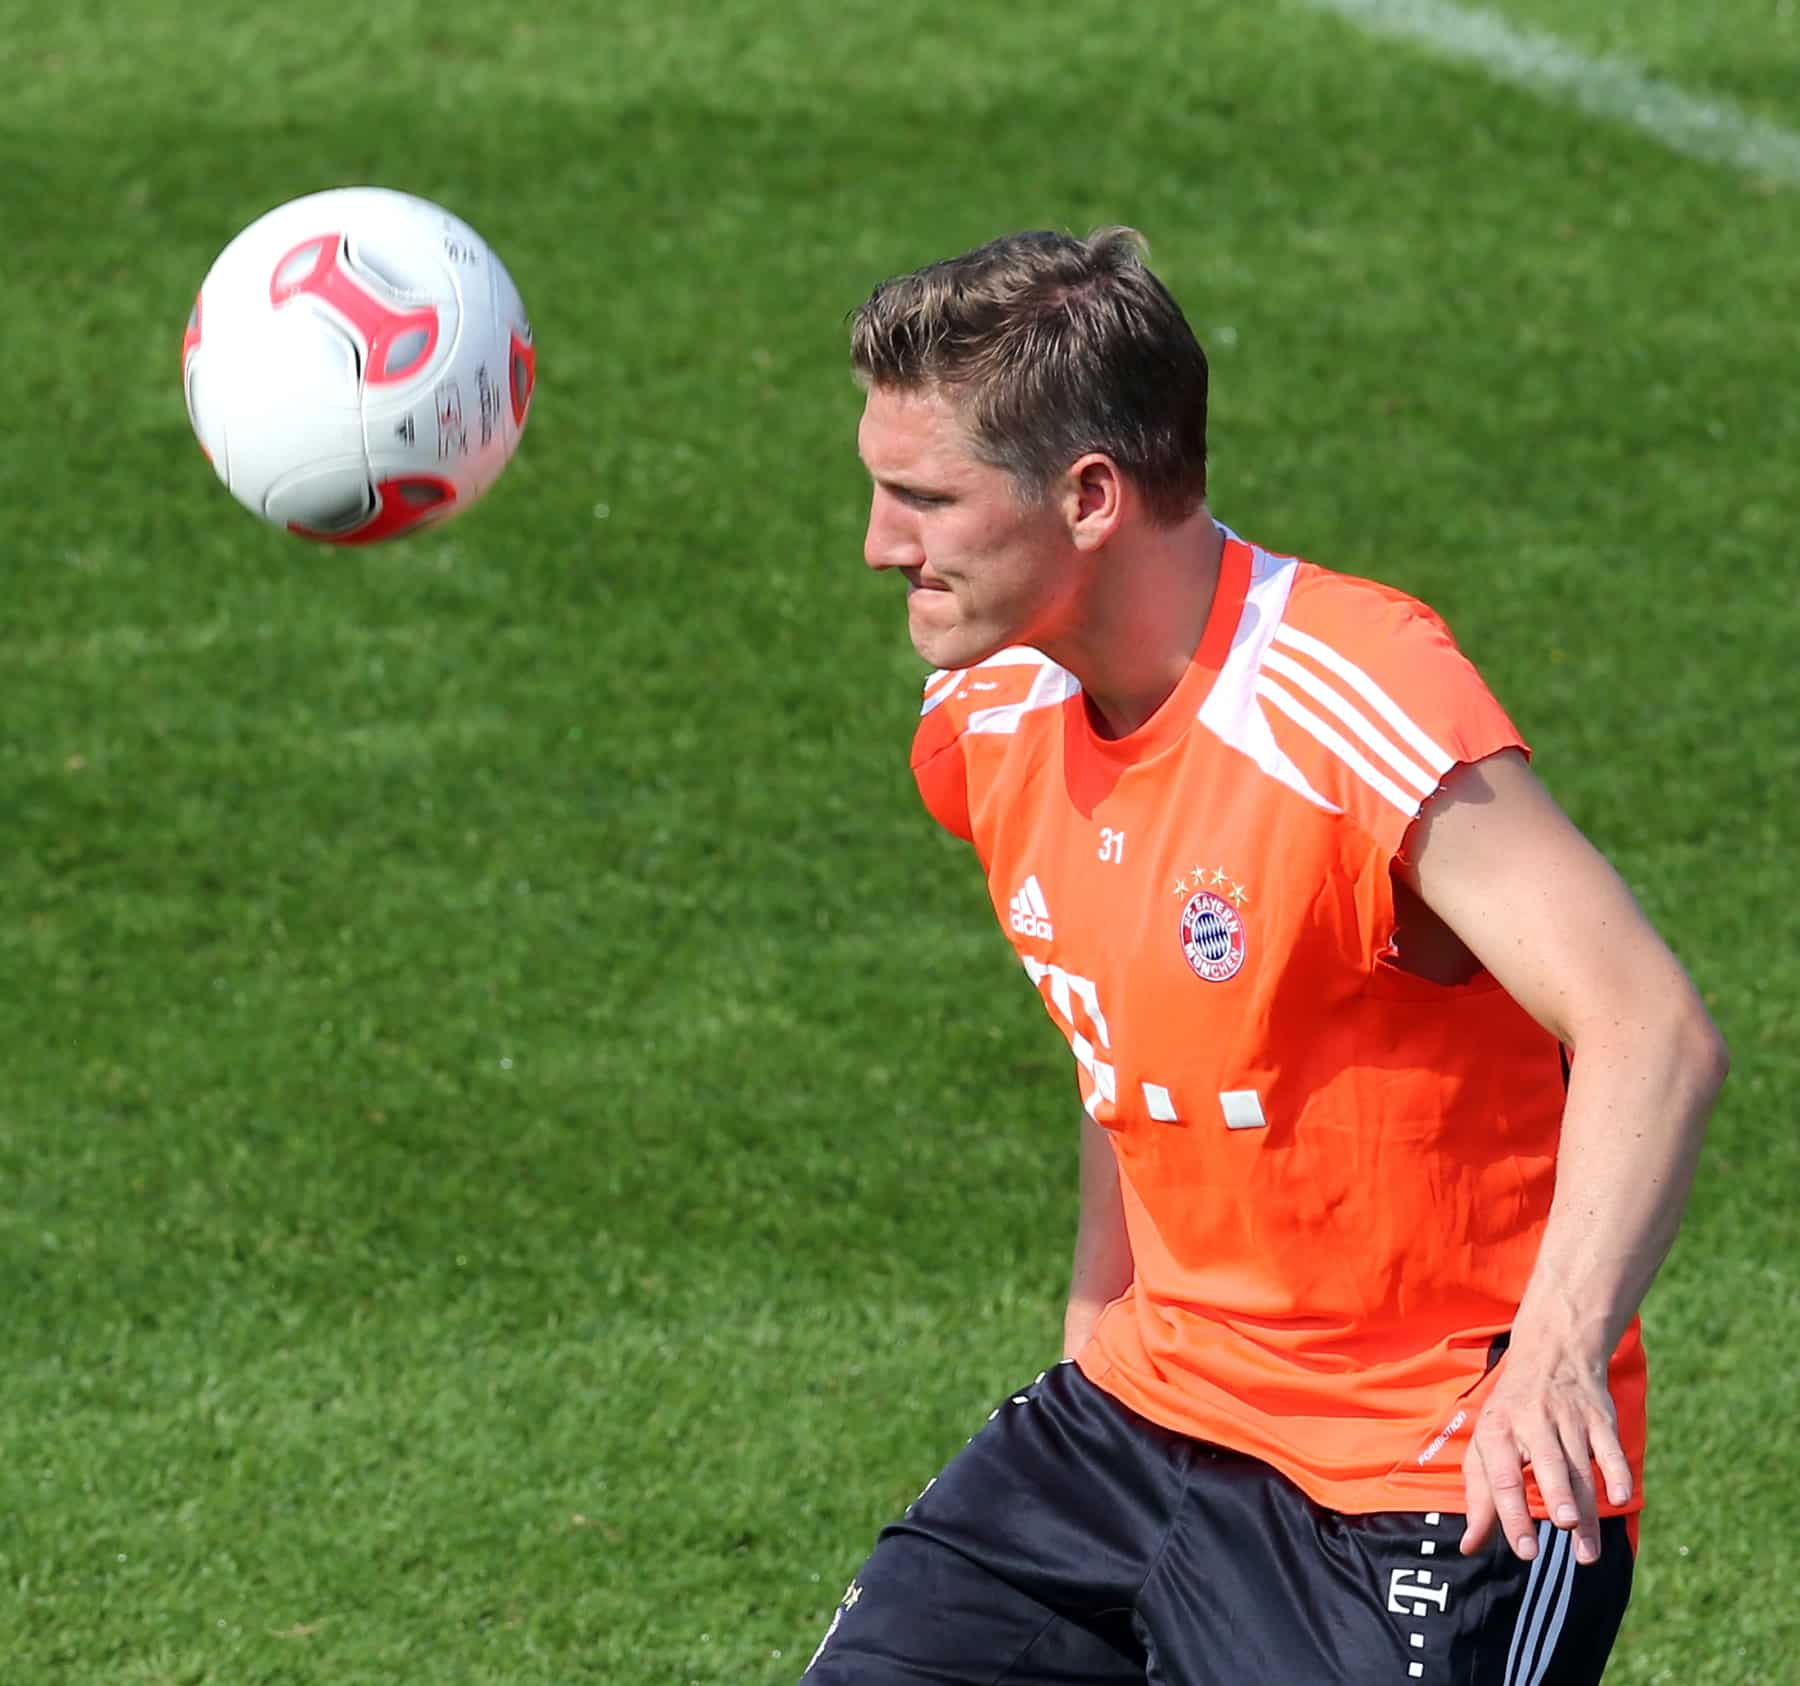 Former EPL Players who played in the MLS: Schweinsteiger